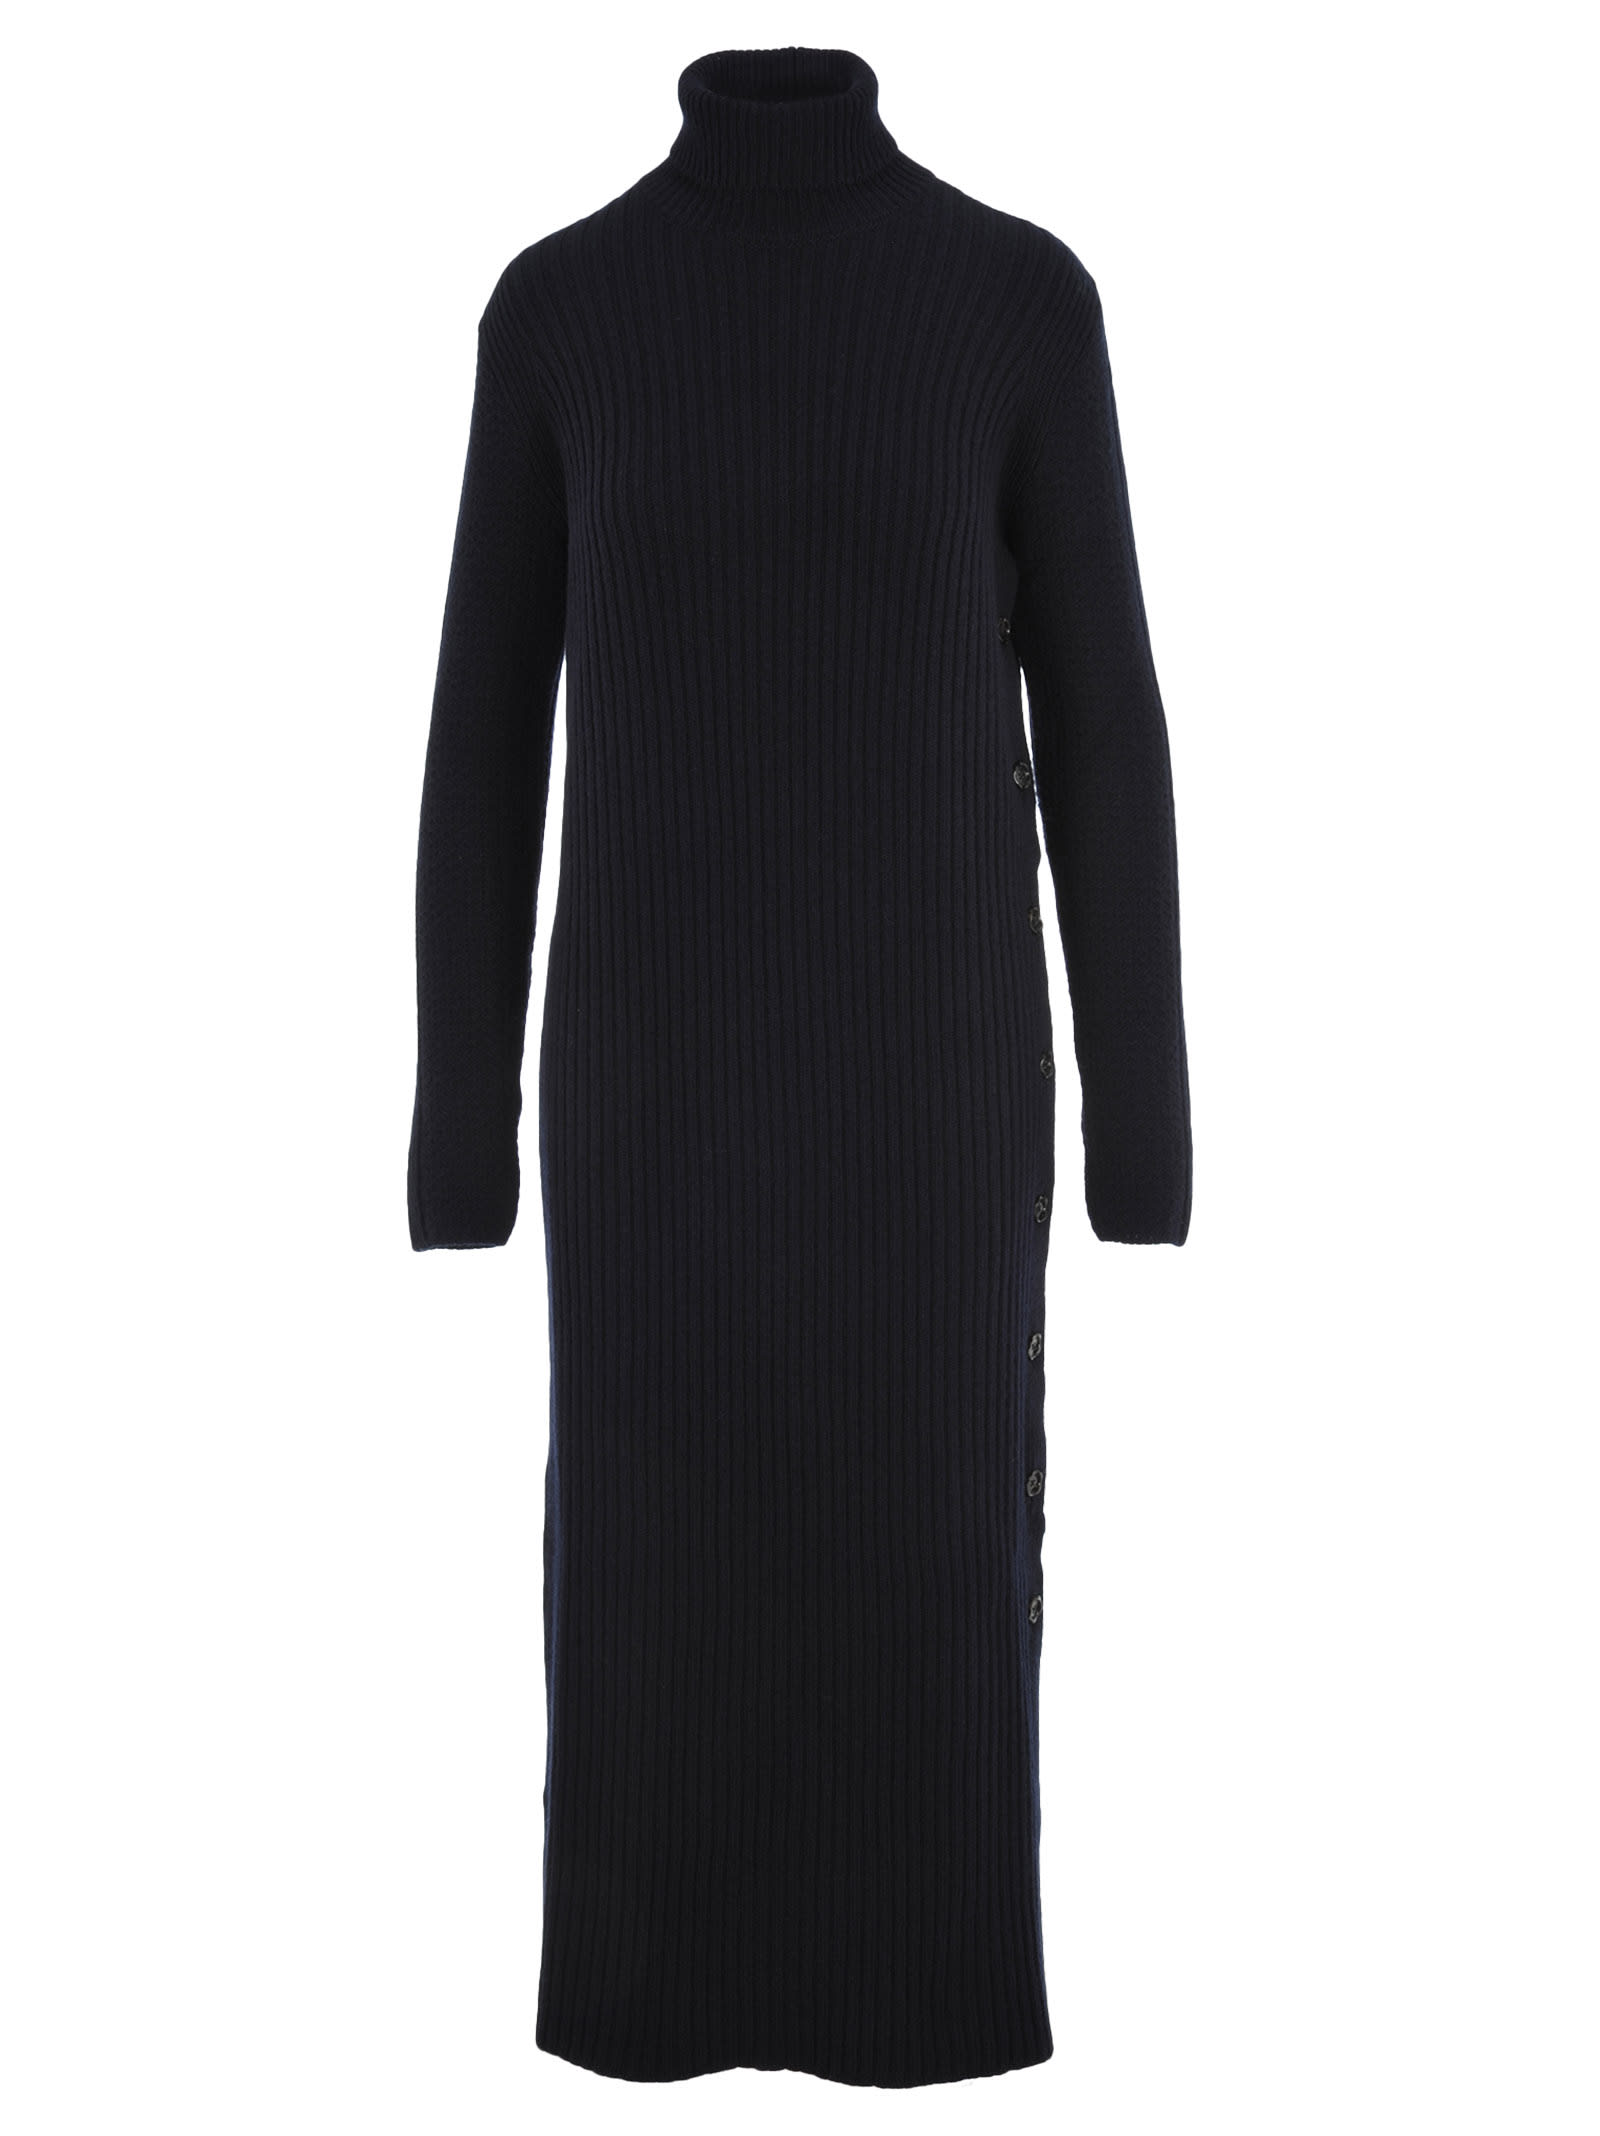 Buy Marni Knitted Maxi Dress online, shop Marni with free shipping